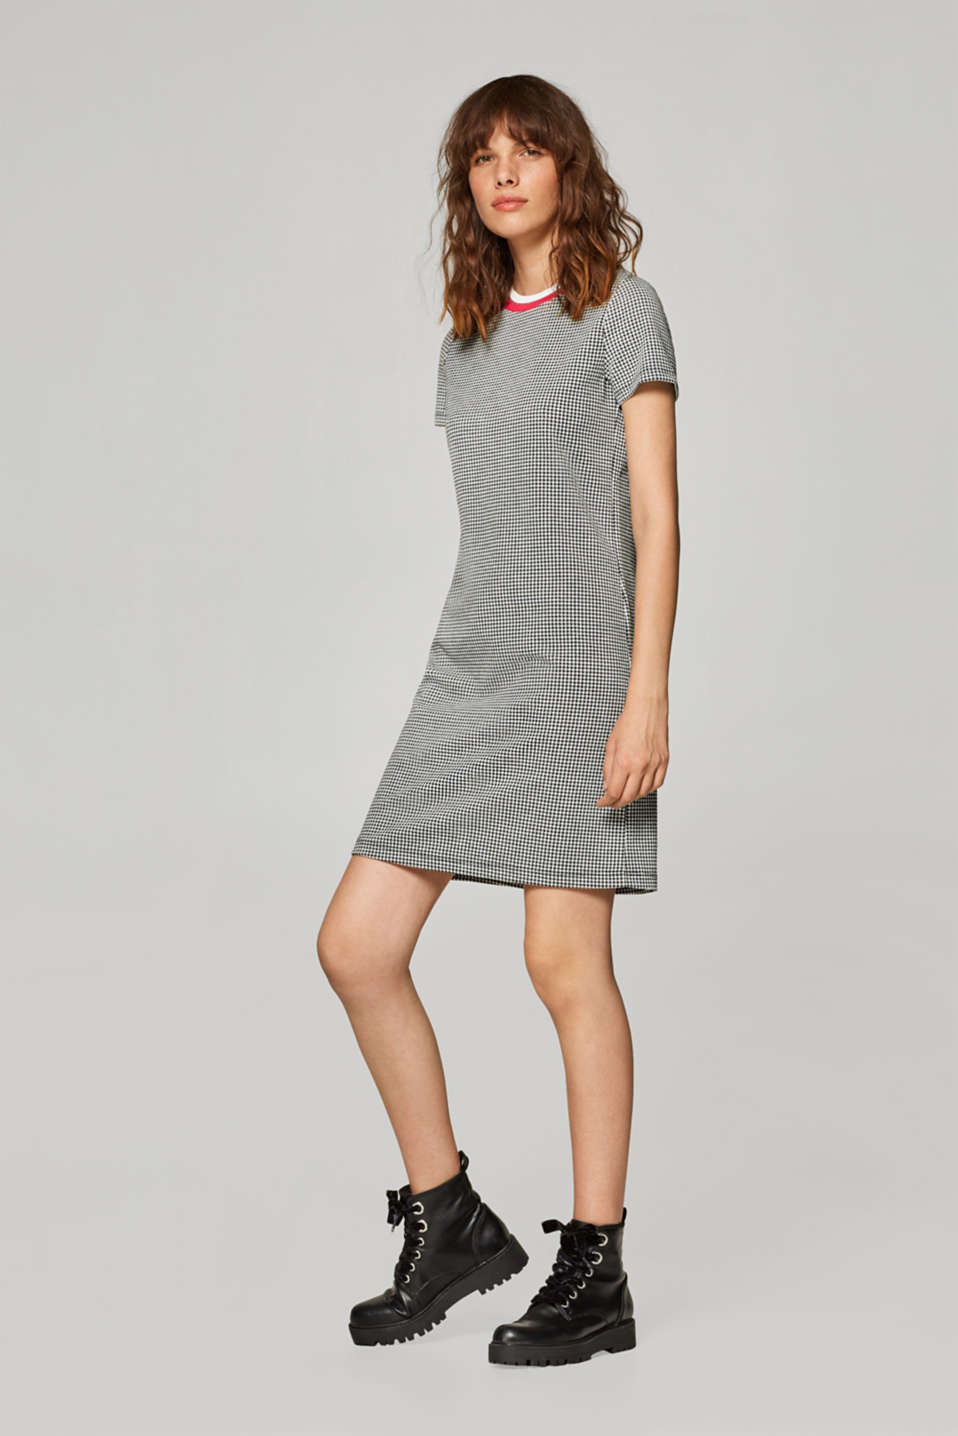 Stretch jersey dress with a houndstooth pattern